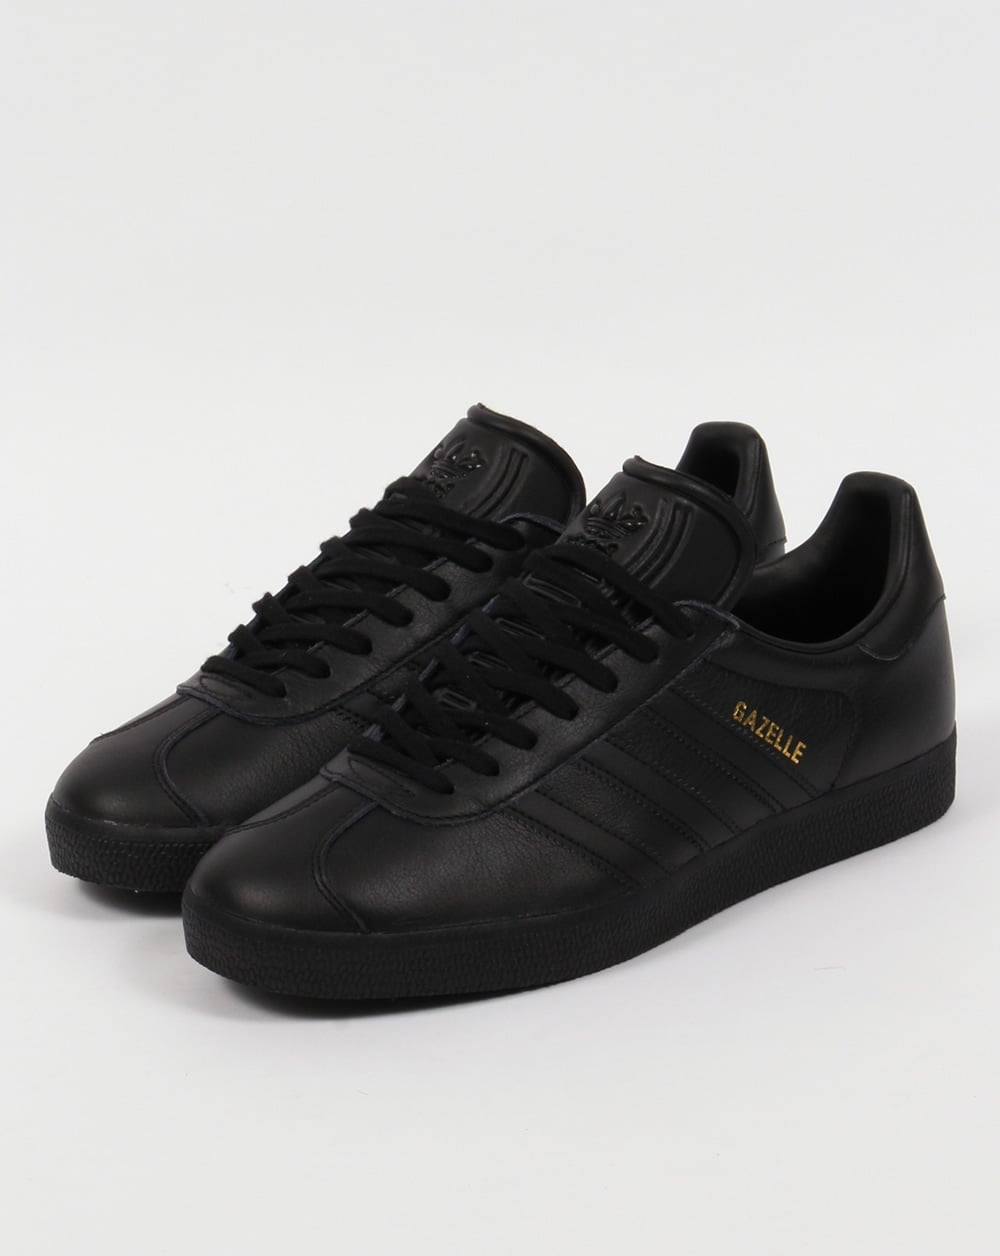 38ff64188b64 Adidas Gazelle Leather Trainers Triple Black